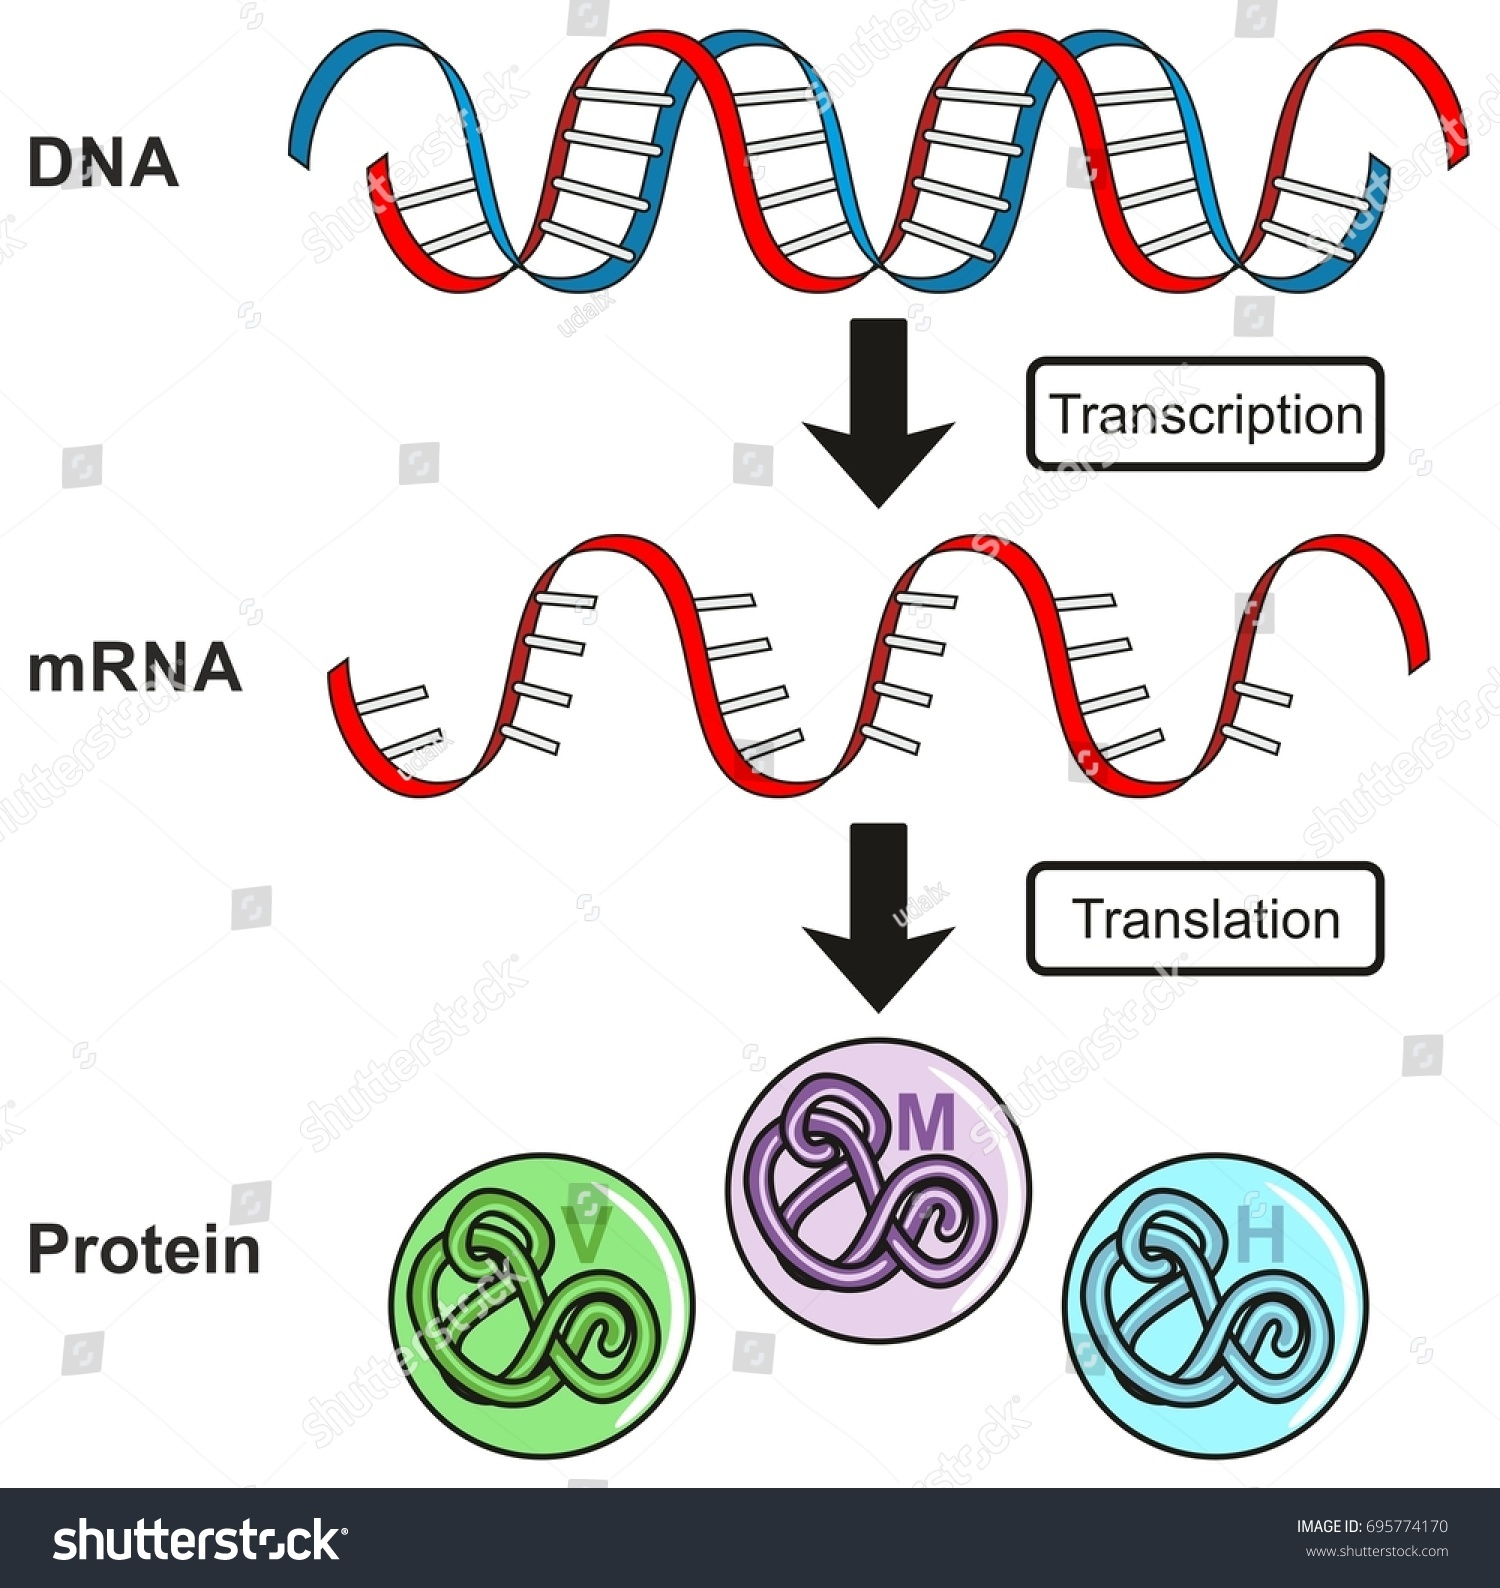 Central dogma gene expression infographic diagram em ilustrao central dogma of gene expression infographic diagram showing the process of transcription and translation from dna ccuart Gallery